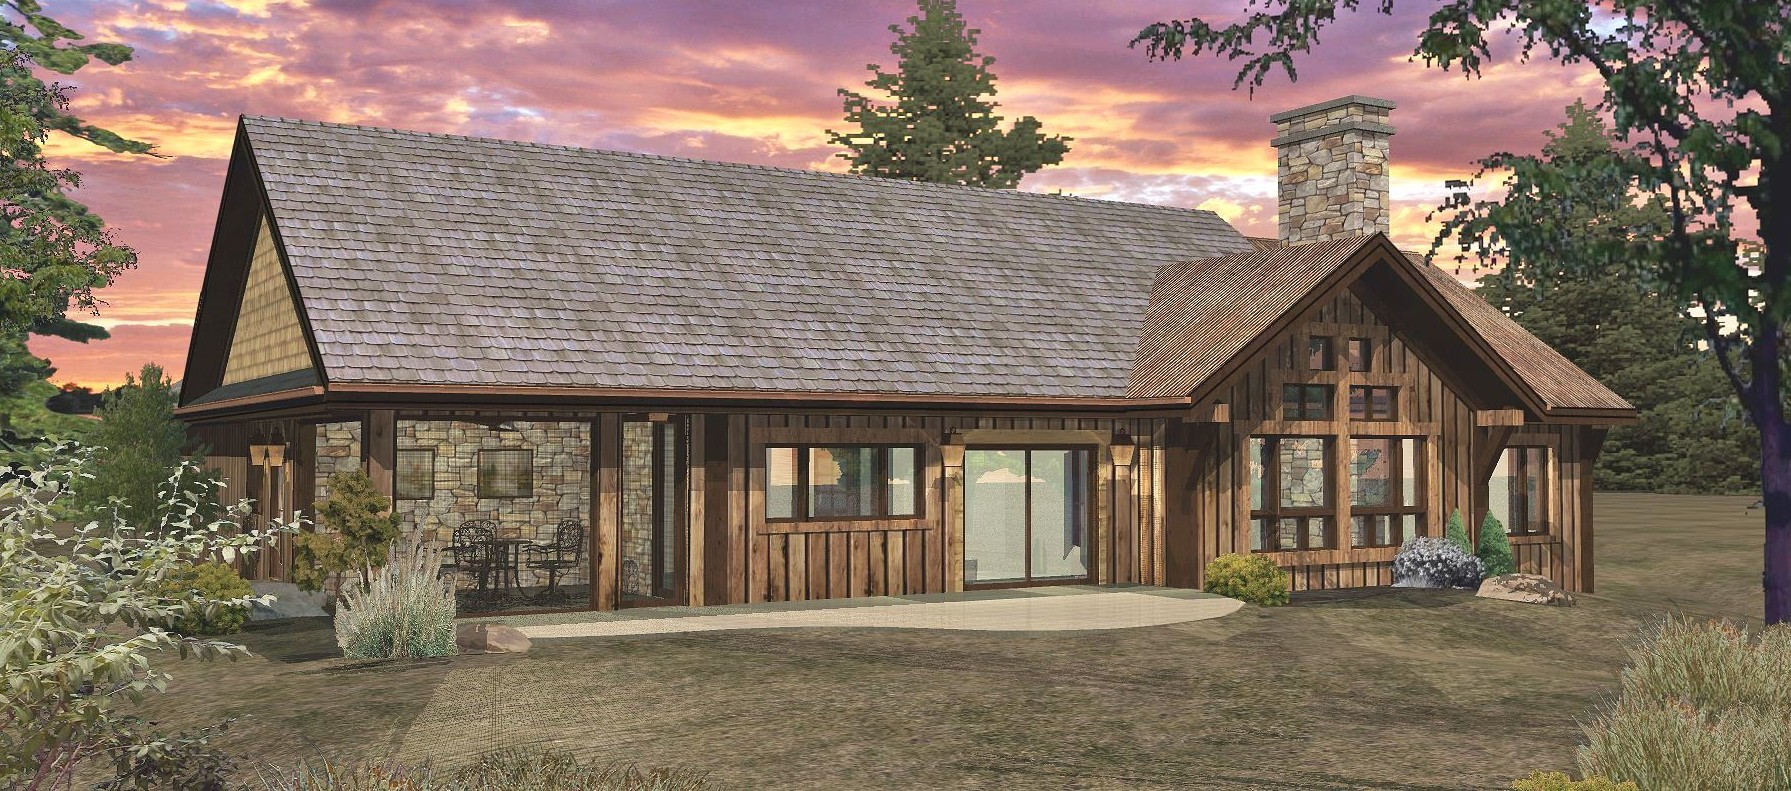 Pinecone - Rear Rendering by Wisconsin Log Homes 1